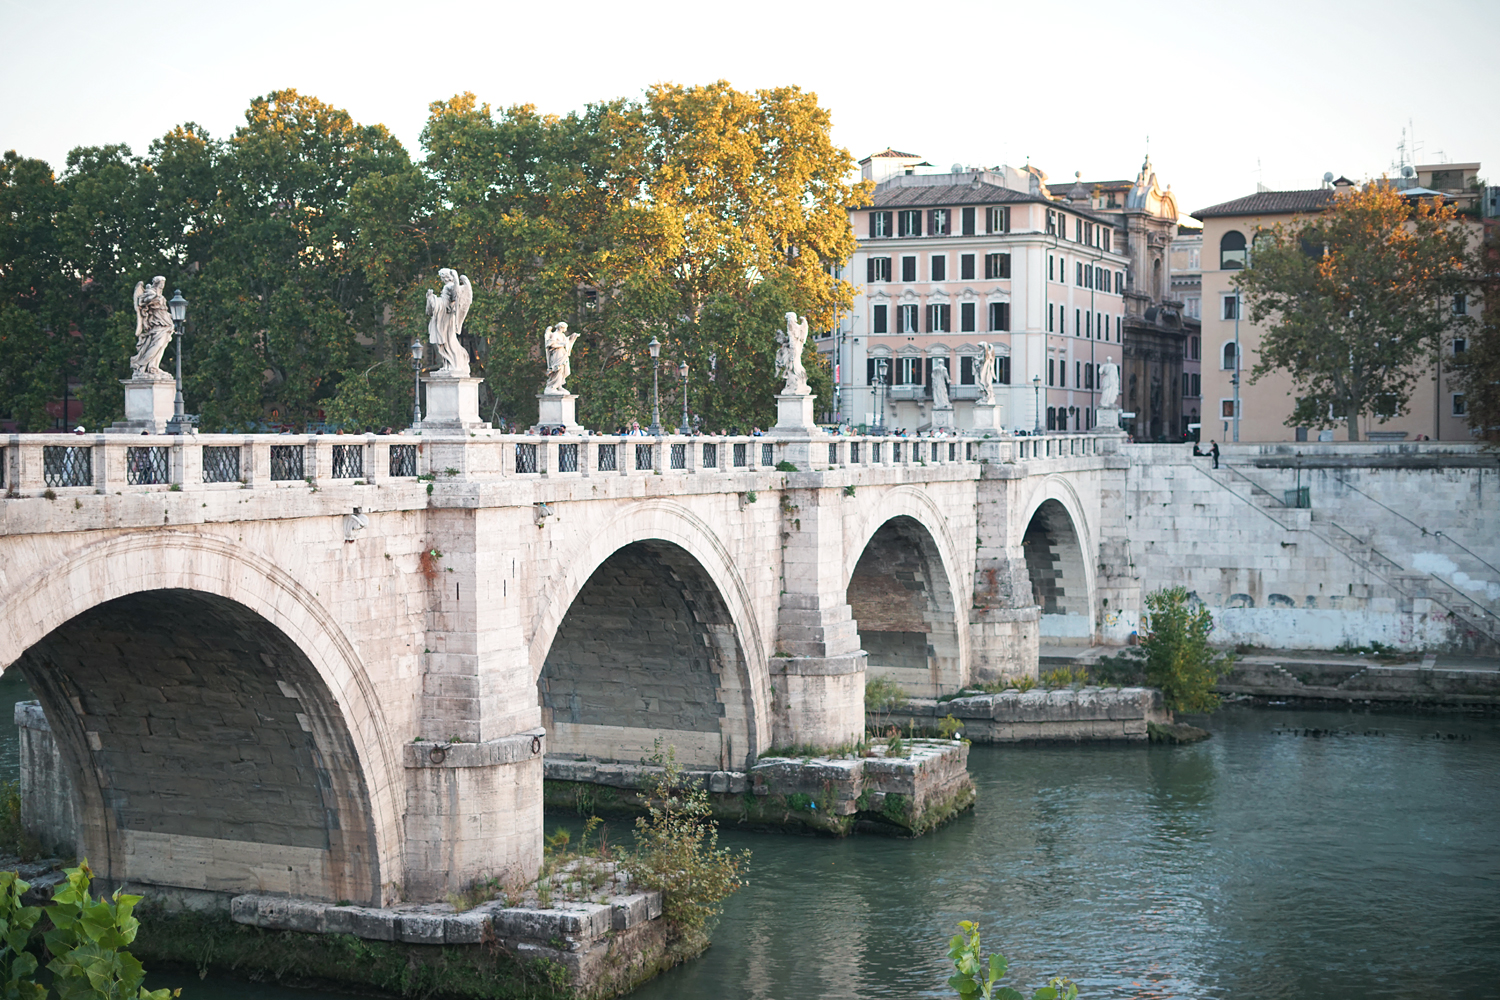 02rome-pontesantangelo-bridge-travel